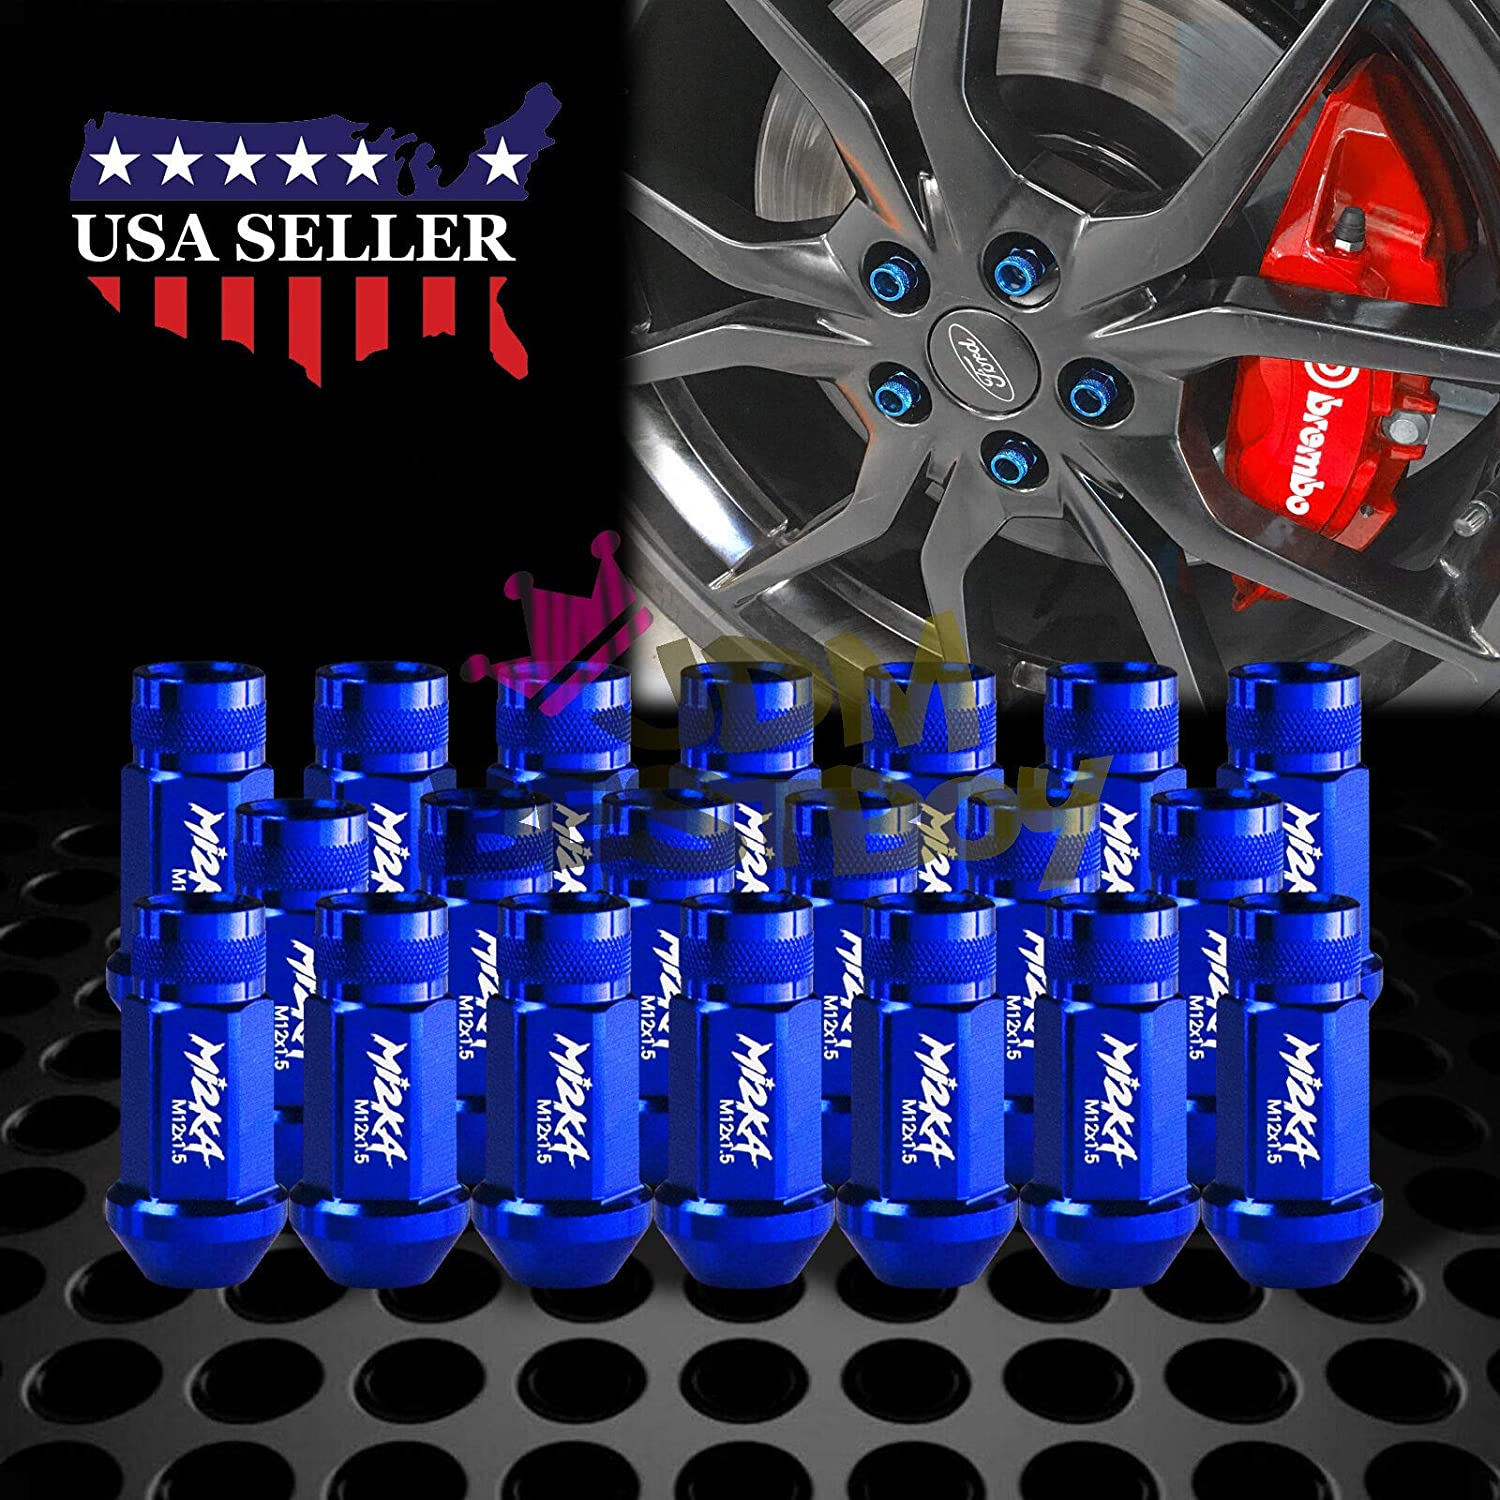 Blue M12x1.5 60mm Aluminum Open End Extended Tuner Wheel Lug Nut+Adapter 20